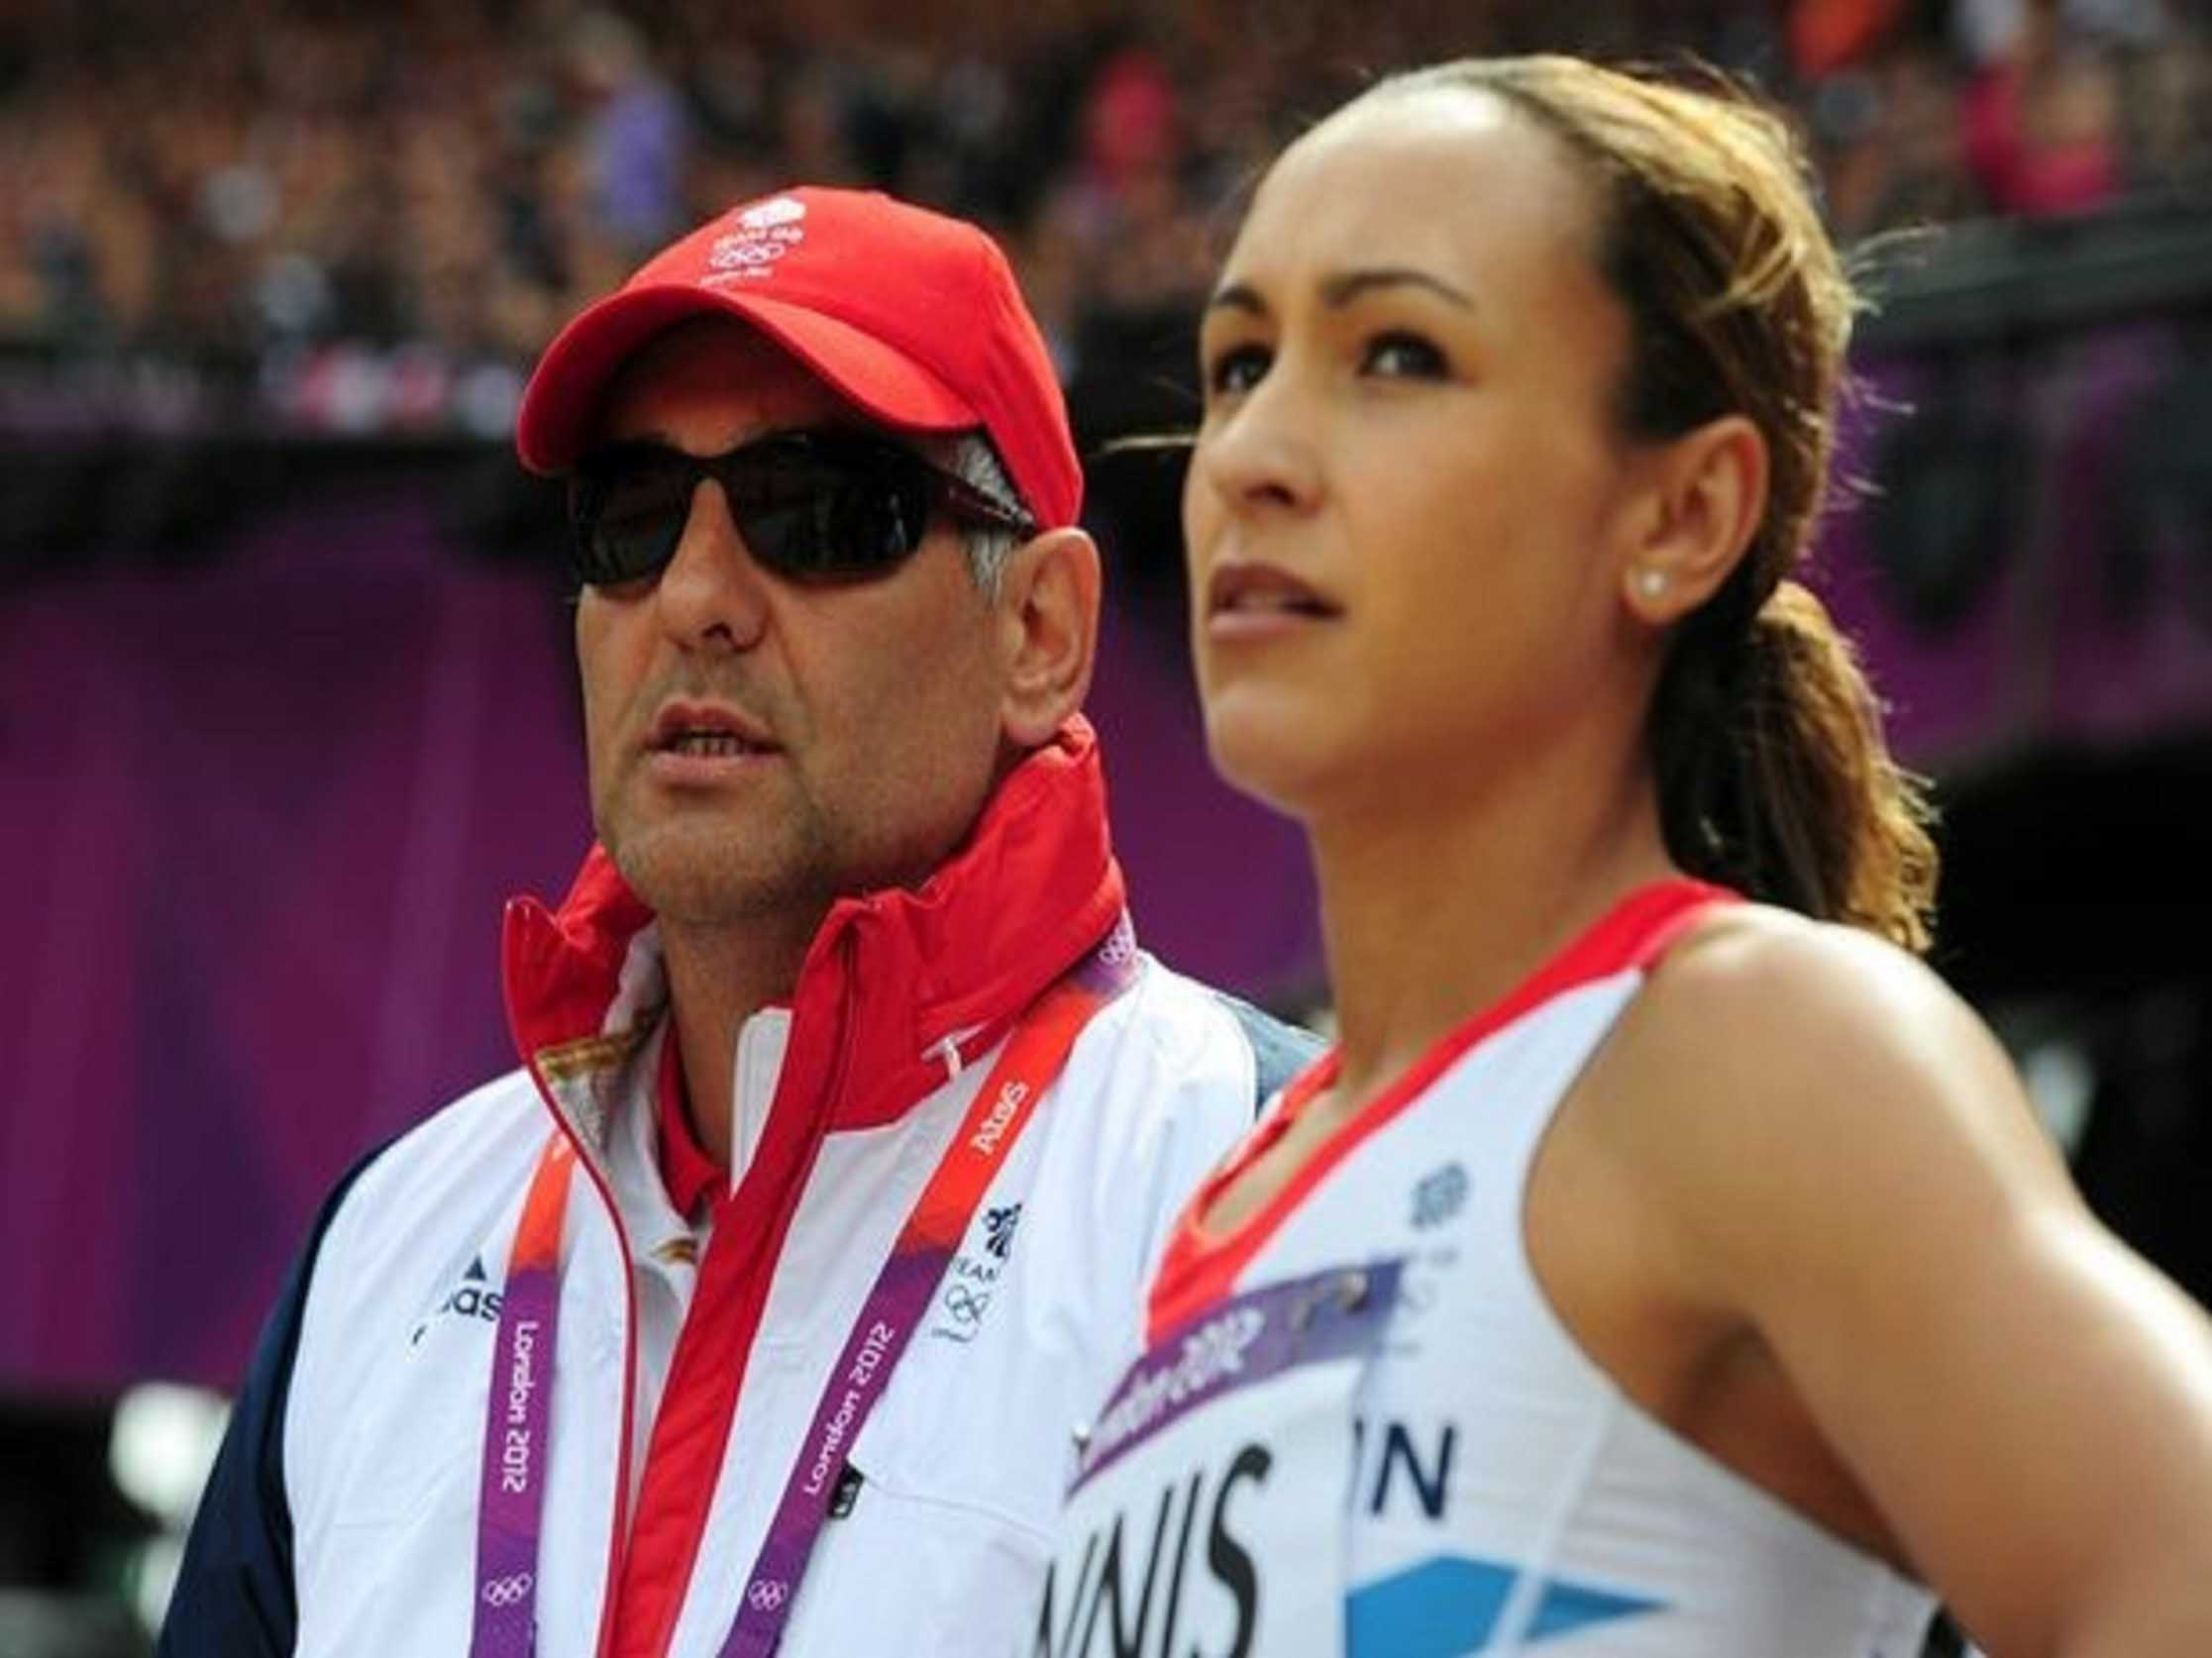 Toni Minichiello to headline ANI 2017 Coaching Conference